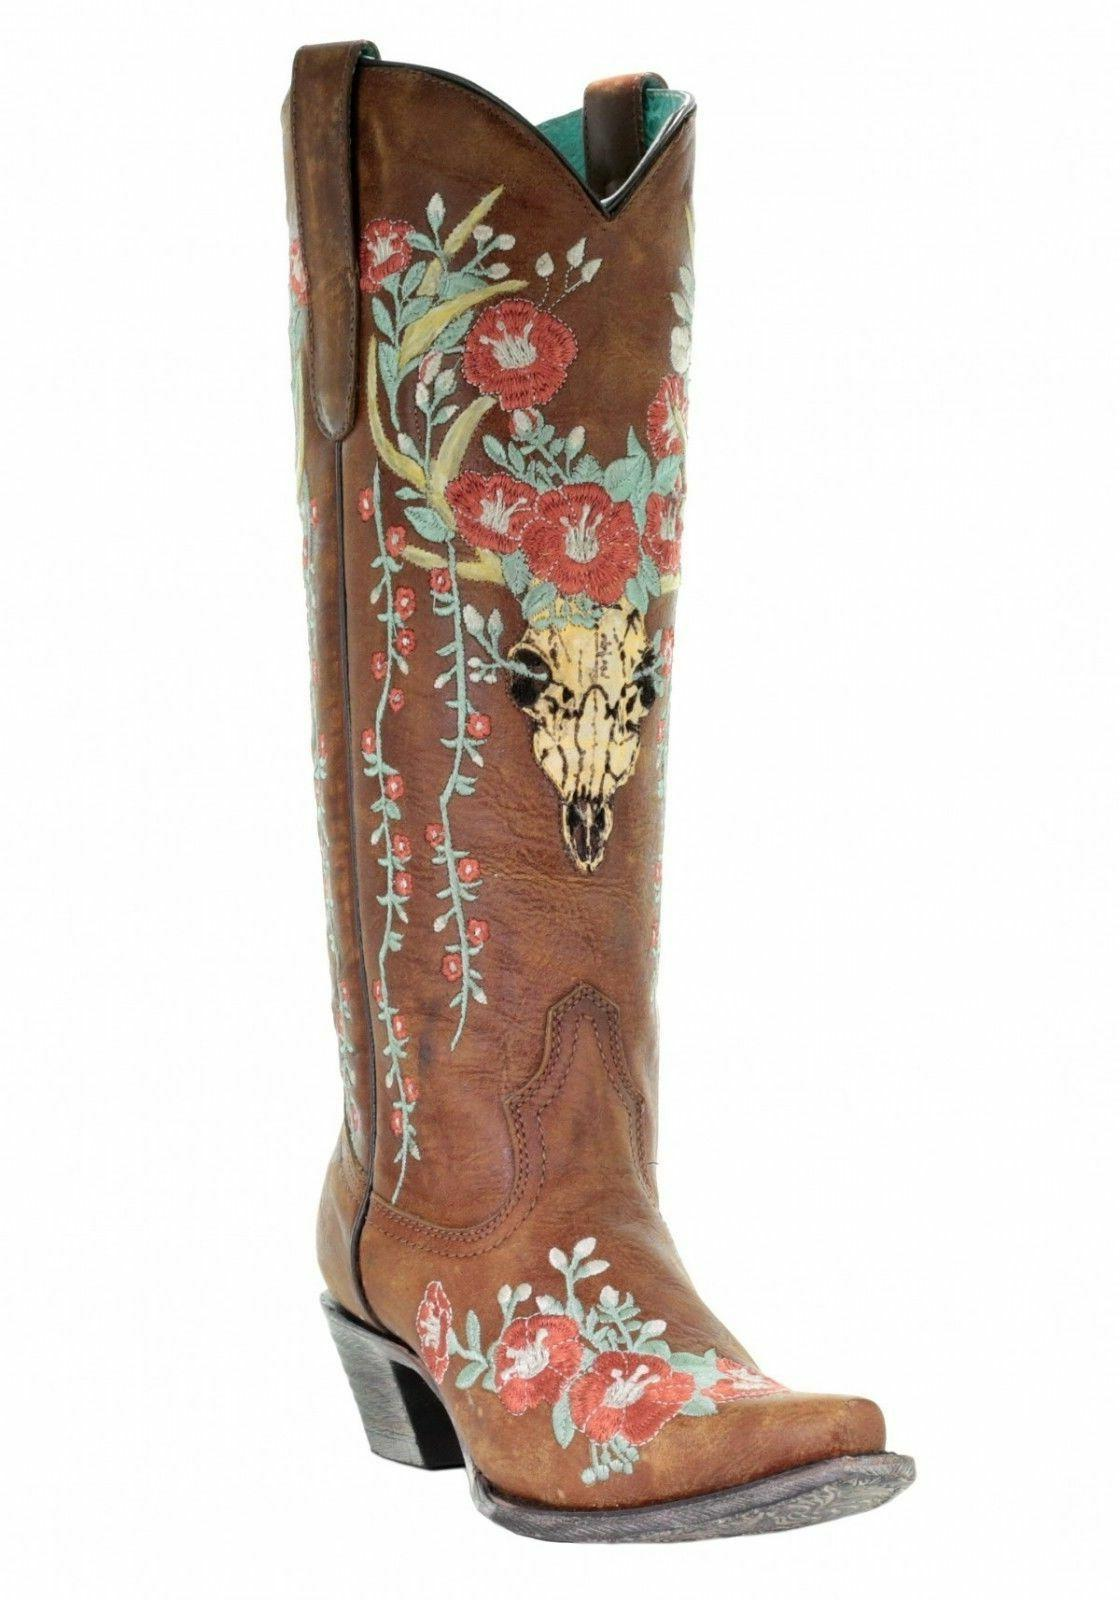 corral tan deer skull floral embroidered western